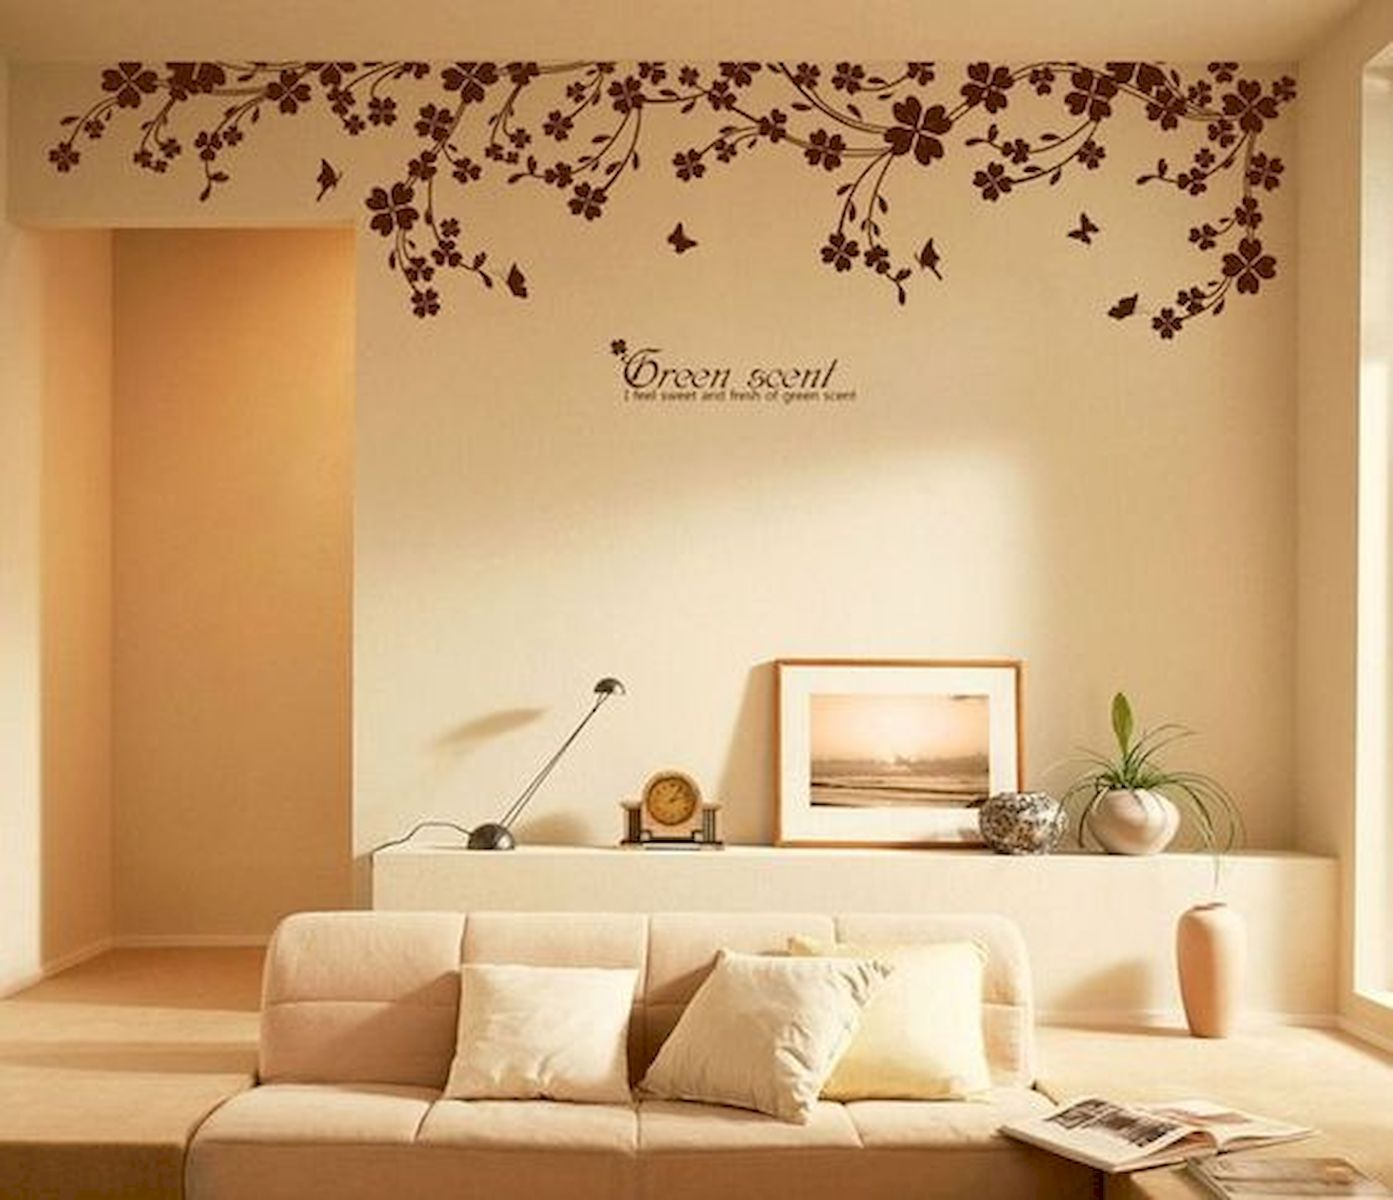 44 Easy But Awesome DIY Wall Painting Ideas To Decorate Your Home (6)